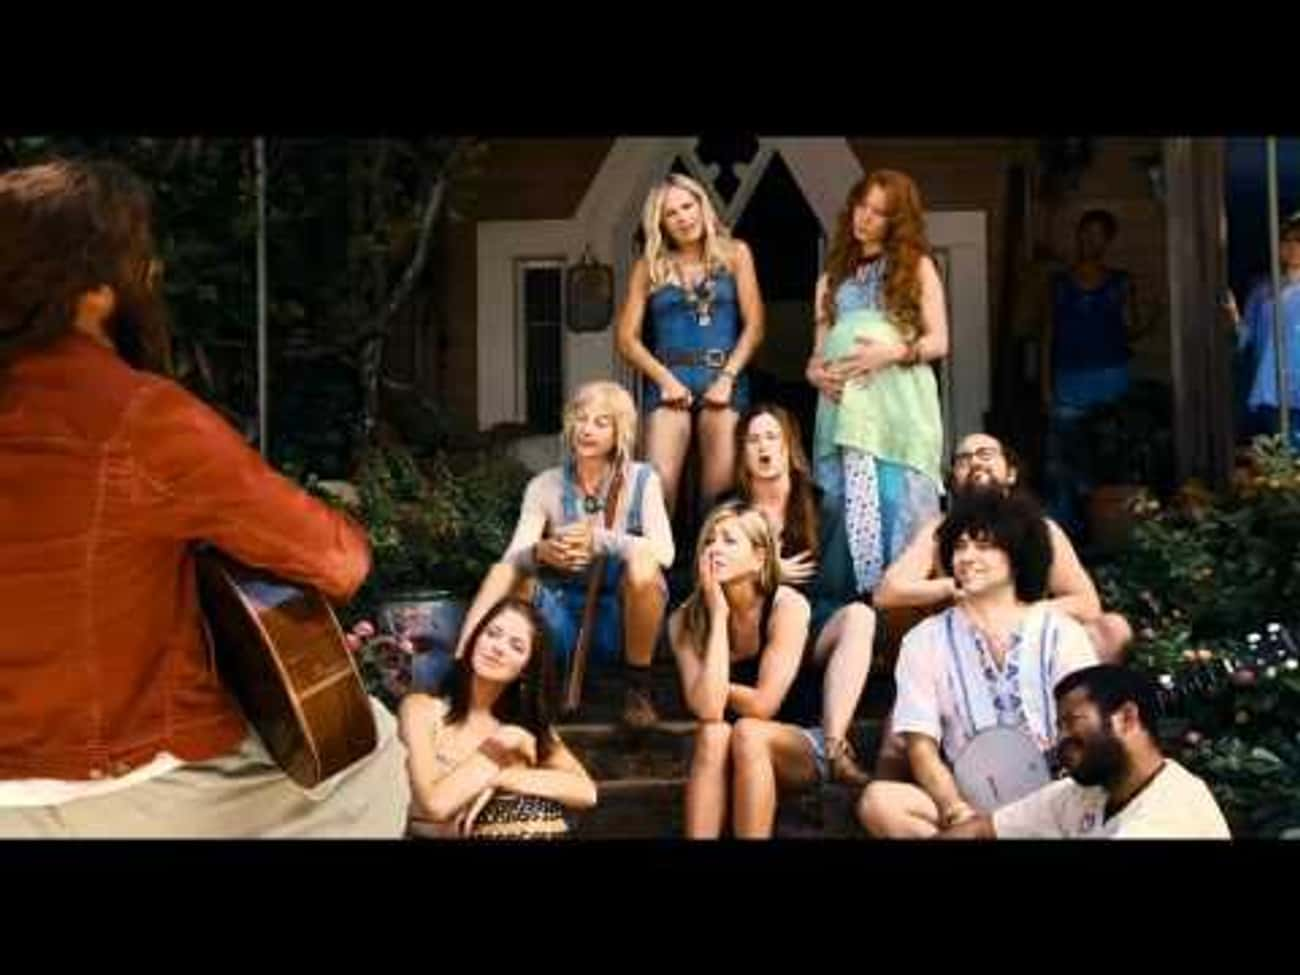 Intentional Community is listed (or ranked) 2 on the list Wanderlust Movie Quotes